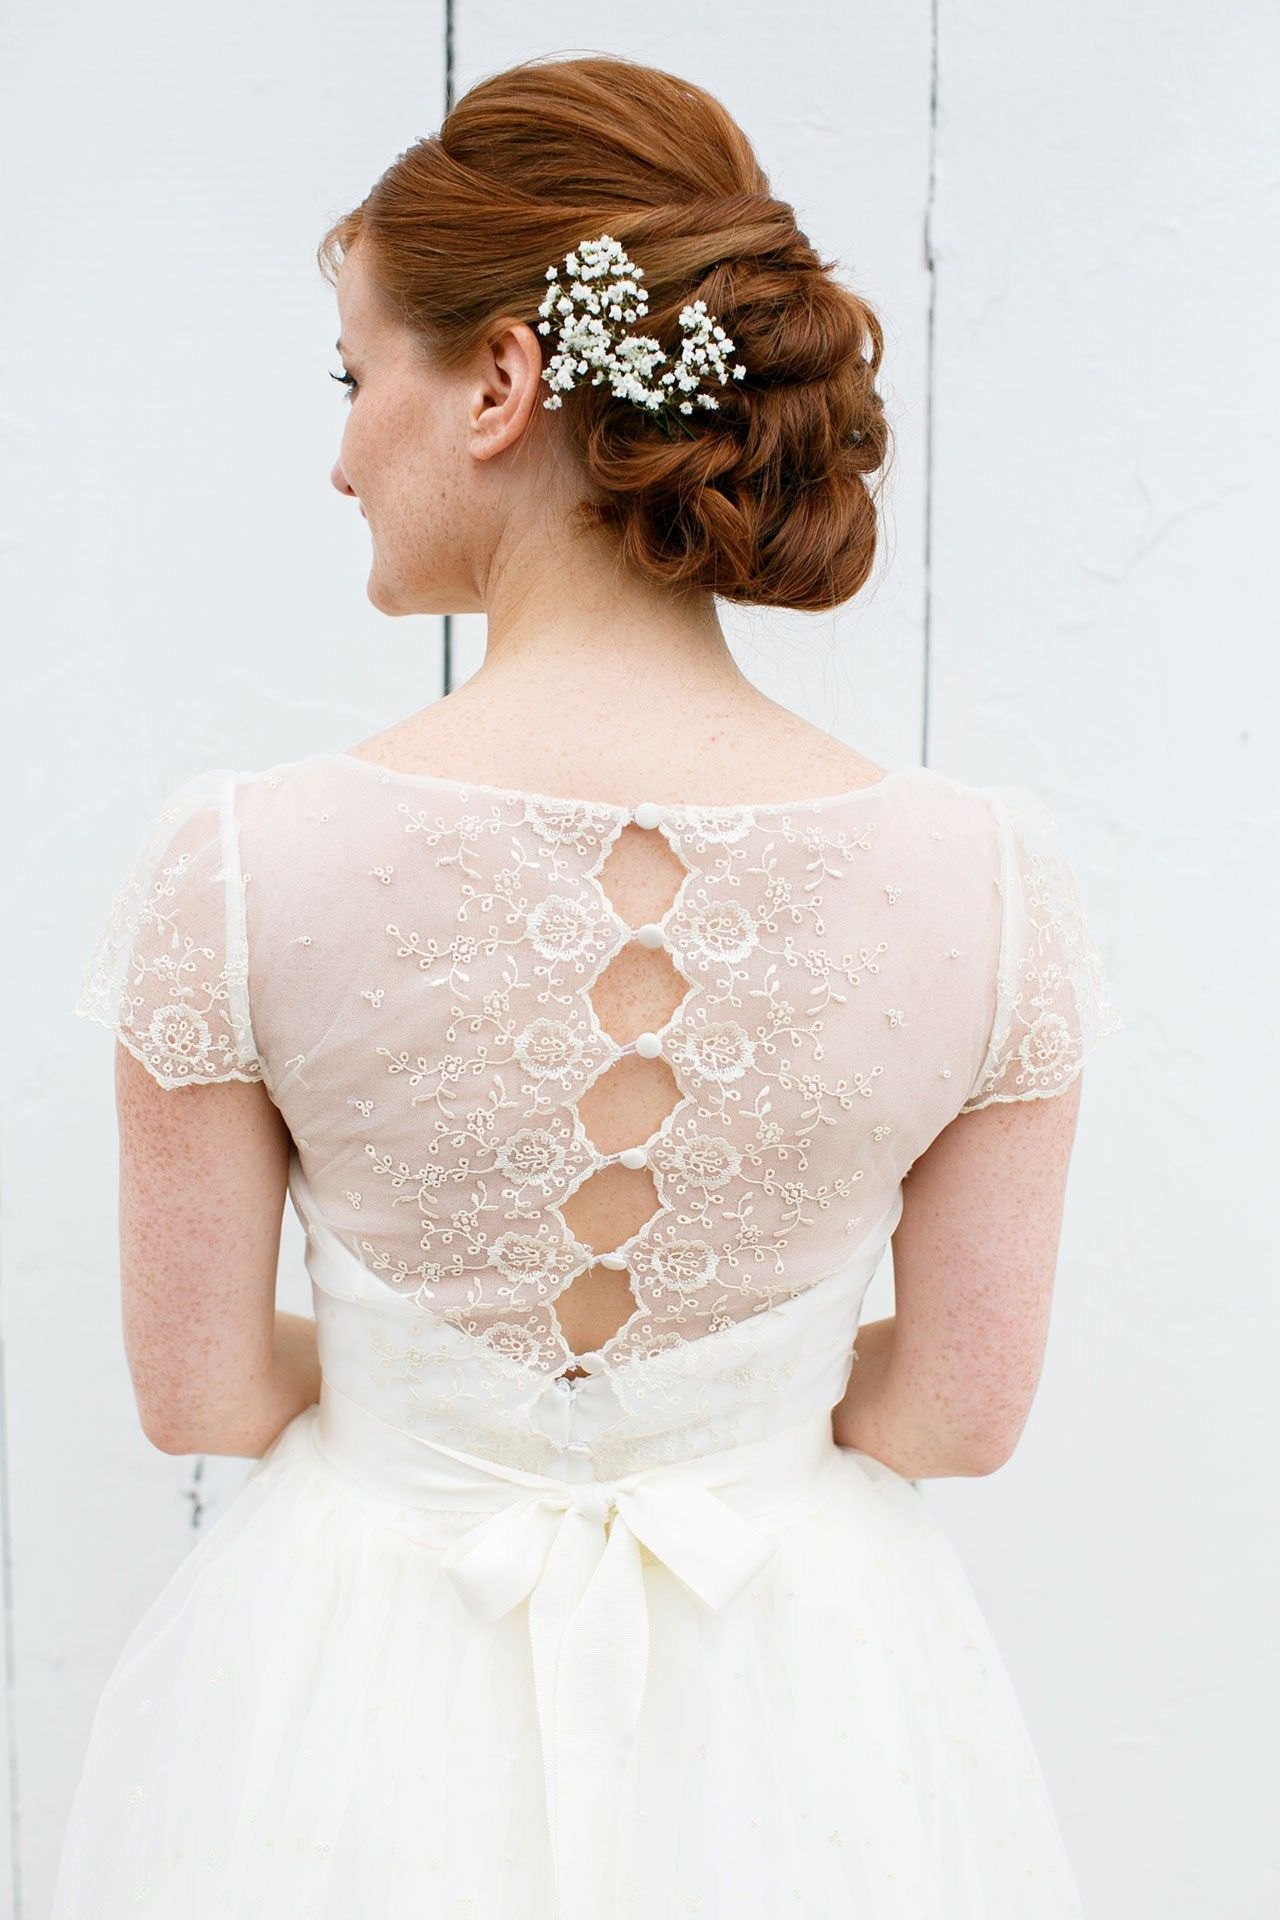 David's Bridal bride Kaitlyn chose a romantic cap sleeve lace gown with scalloped bodice detail for her farm wedding.